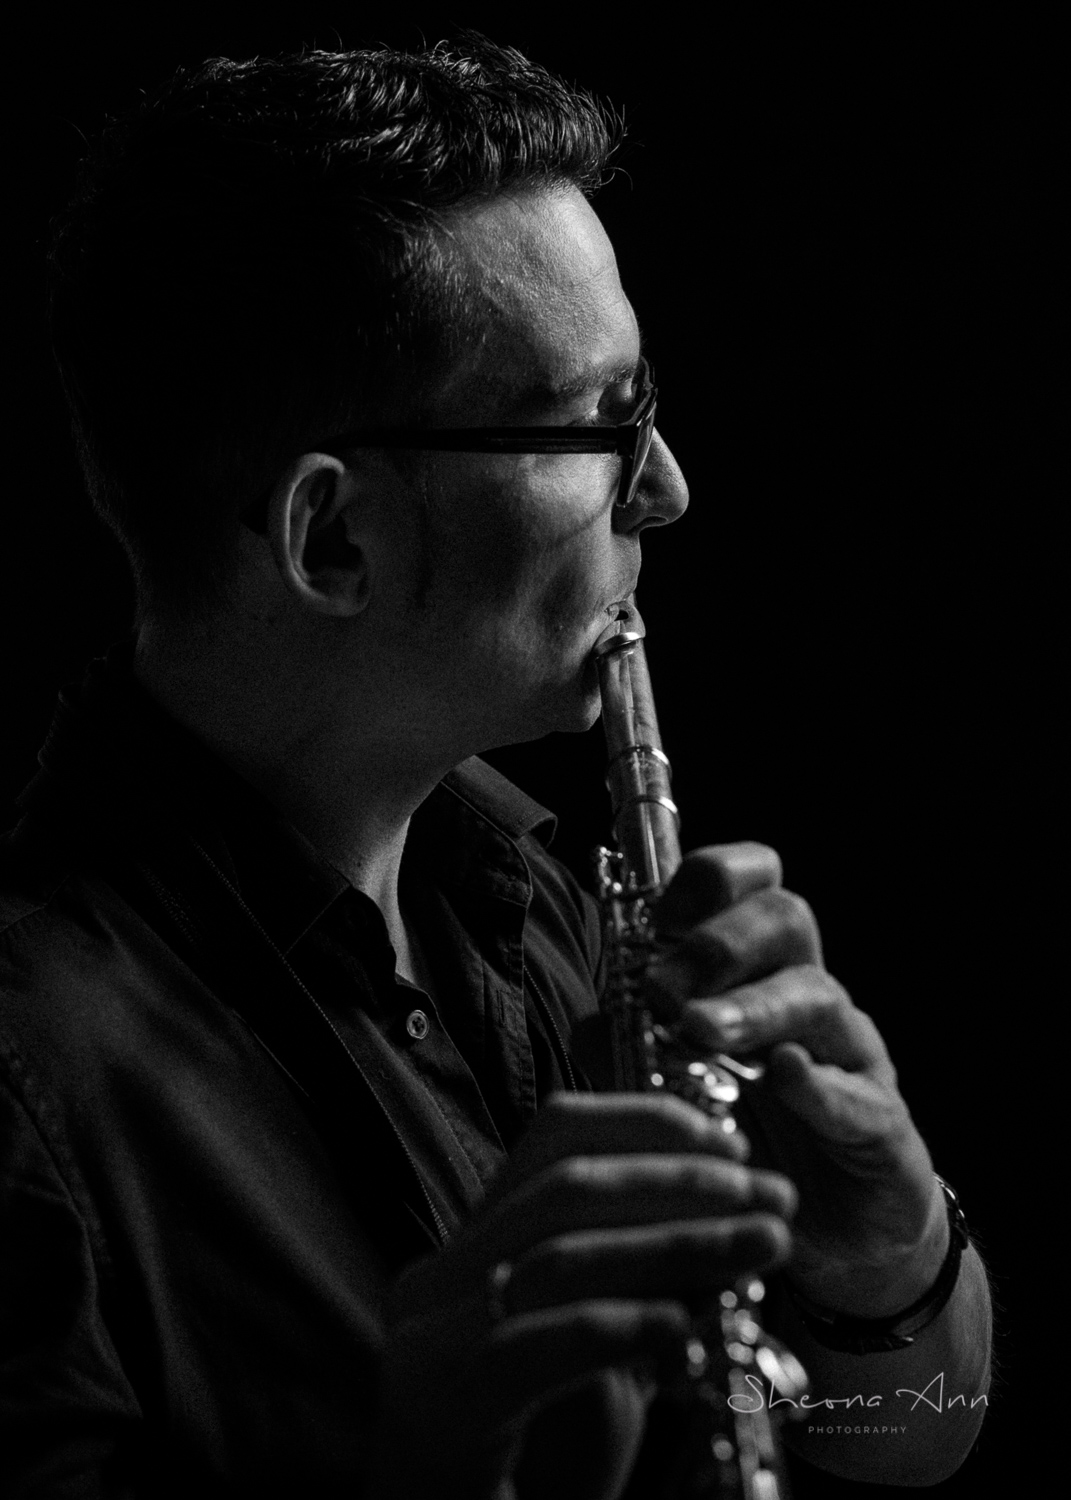 moody portrait of musician plying the flute